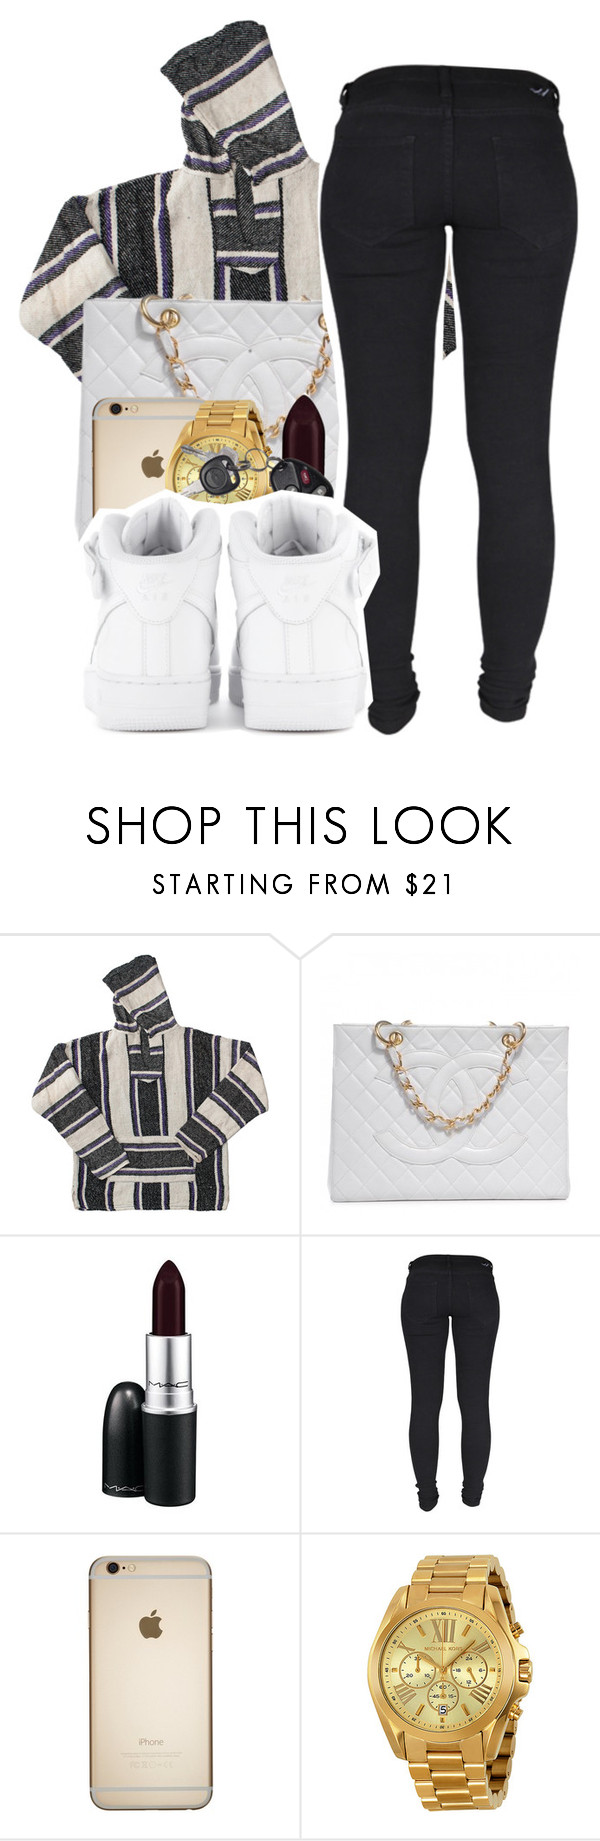 """""""262"""" by tuhlayjuh ❤ liked on Polyvore featuring American Apparel, Chanel, MAC Cosmetics, Dr. Denim, Michael Kors and NIKE"""